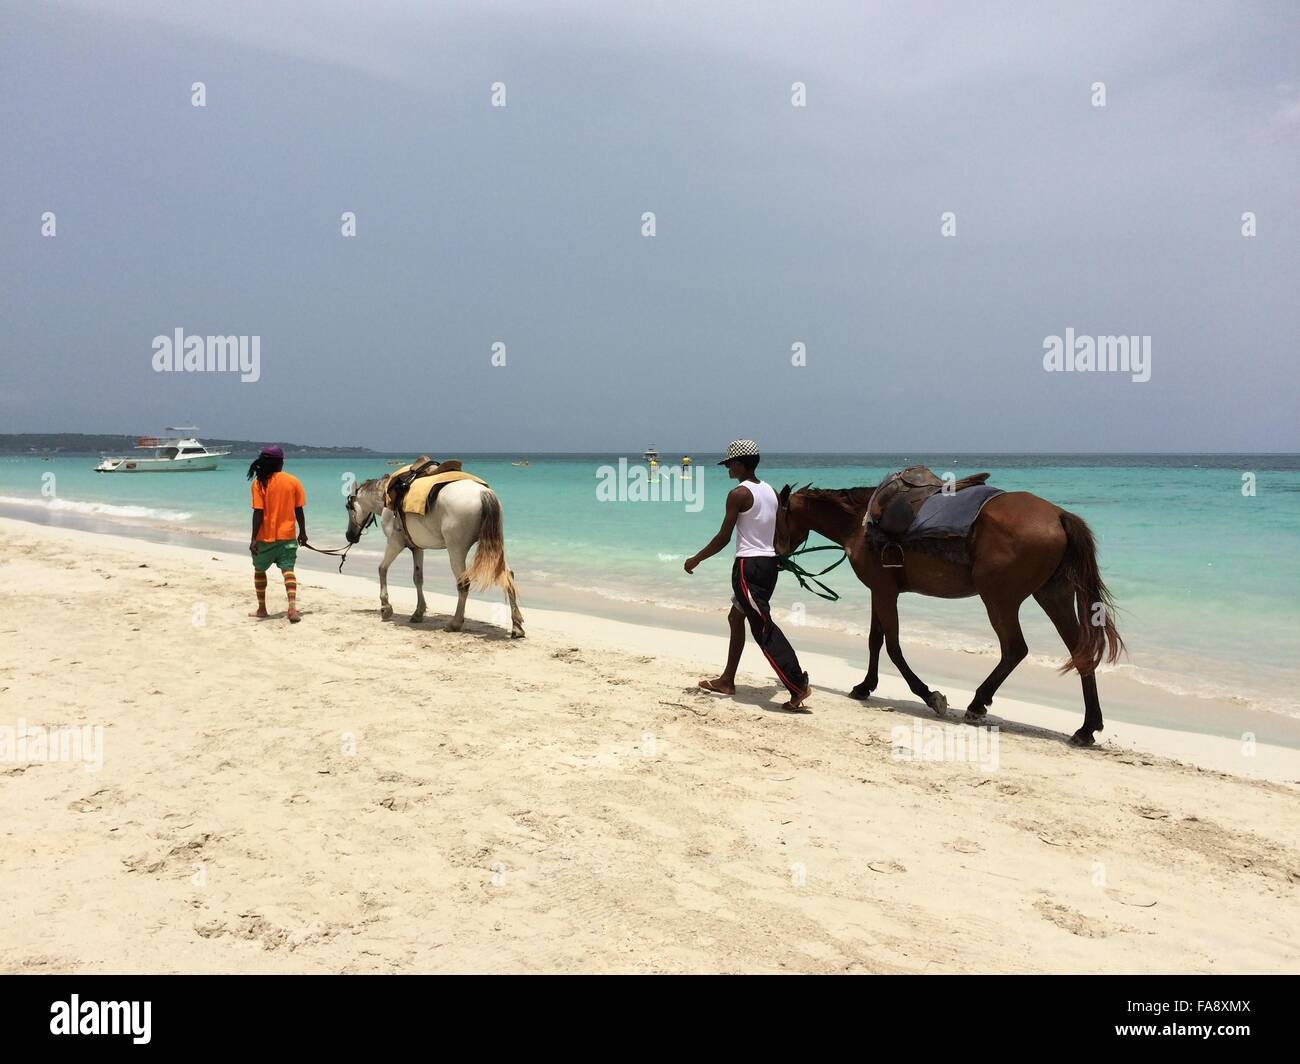 Horses Walking on Seven Mile Beach in Negril, Jamaica - Stock Image